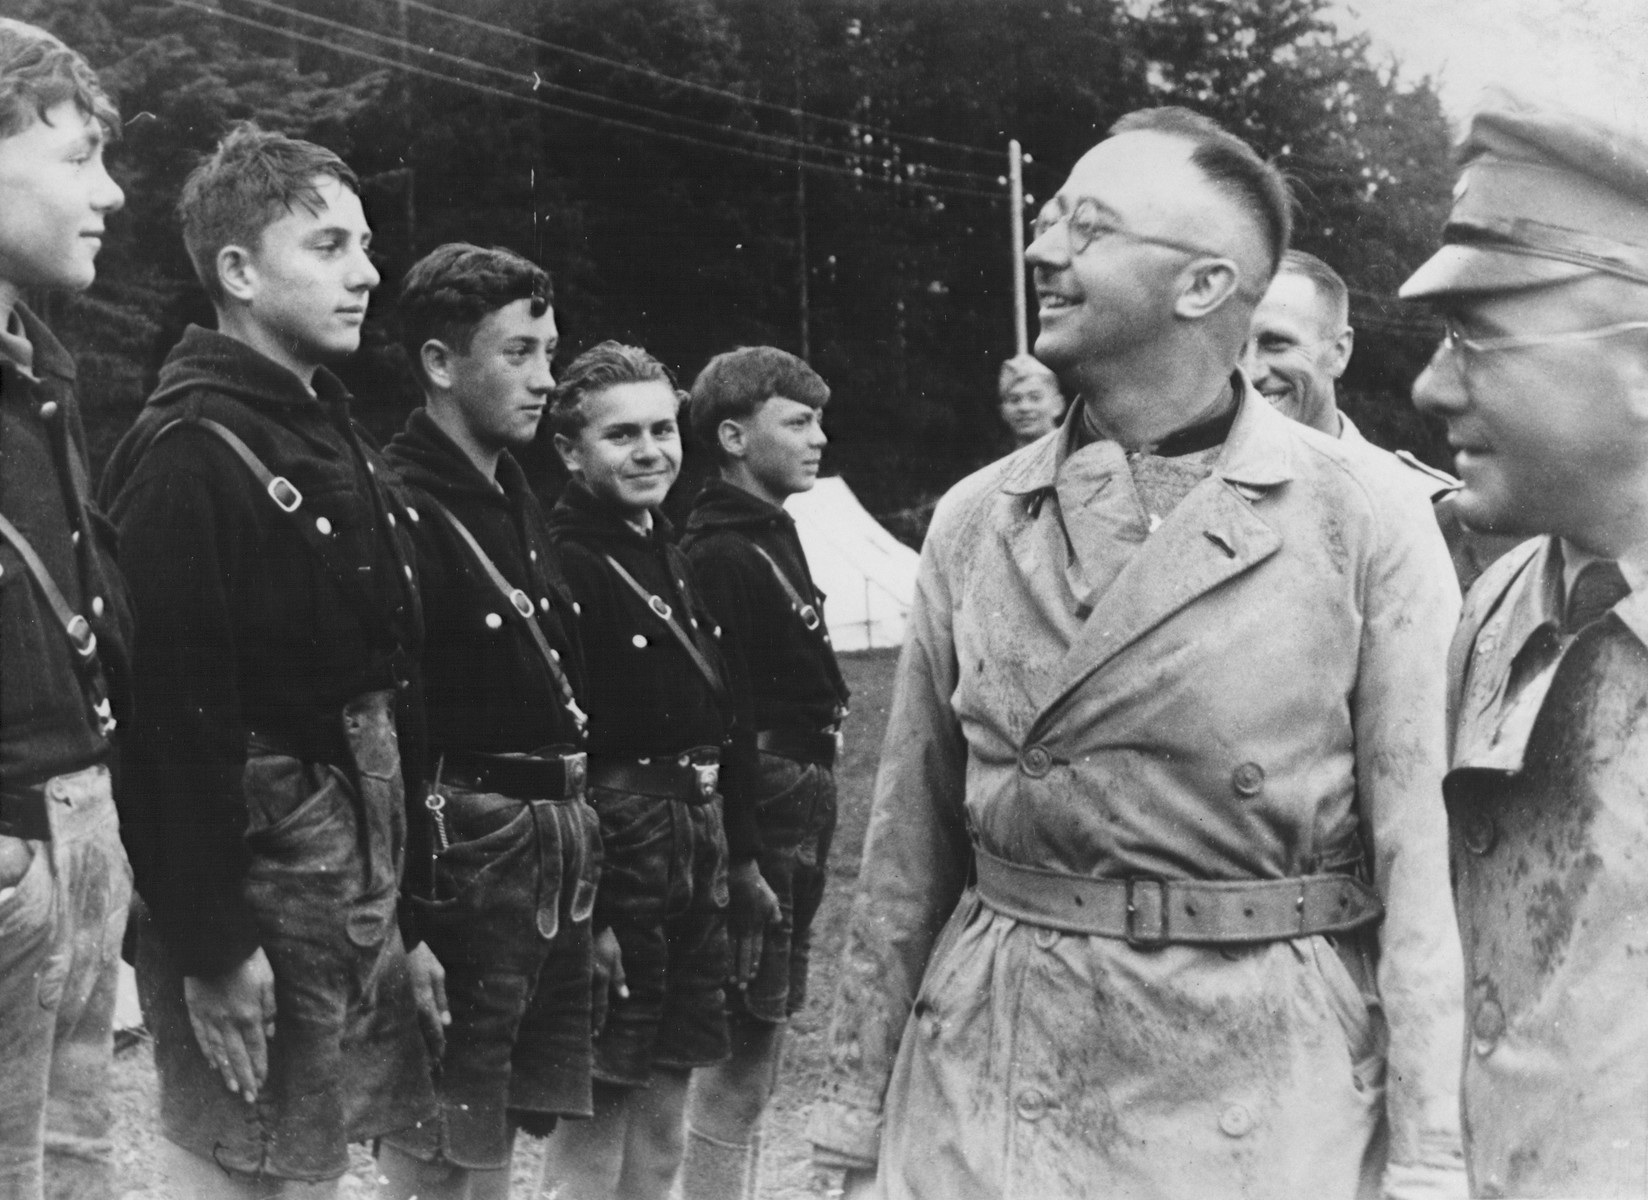 During a visit to the Hochland youth camp, Reichsfuehrer-SS Heinrich Himmler (center) and camp leader Emil Klein (right, in profile) review a group of German youth who are standing in formation.